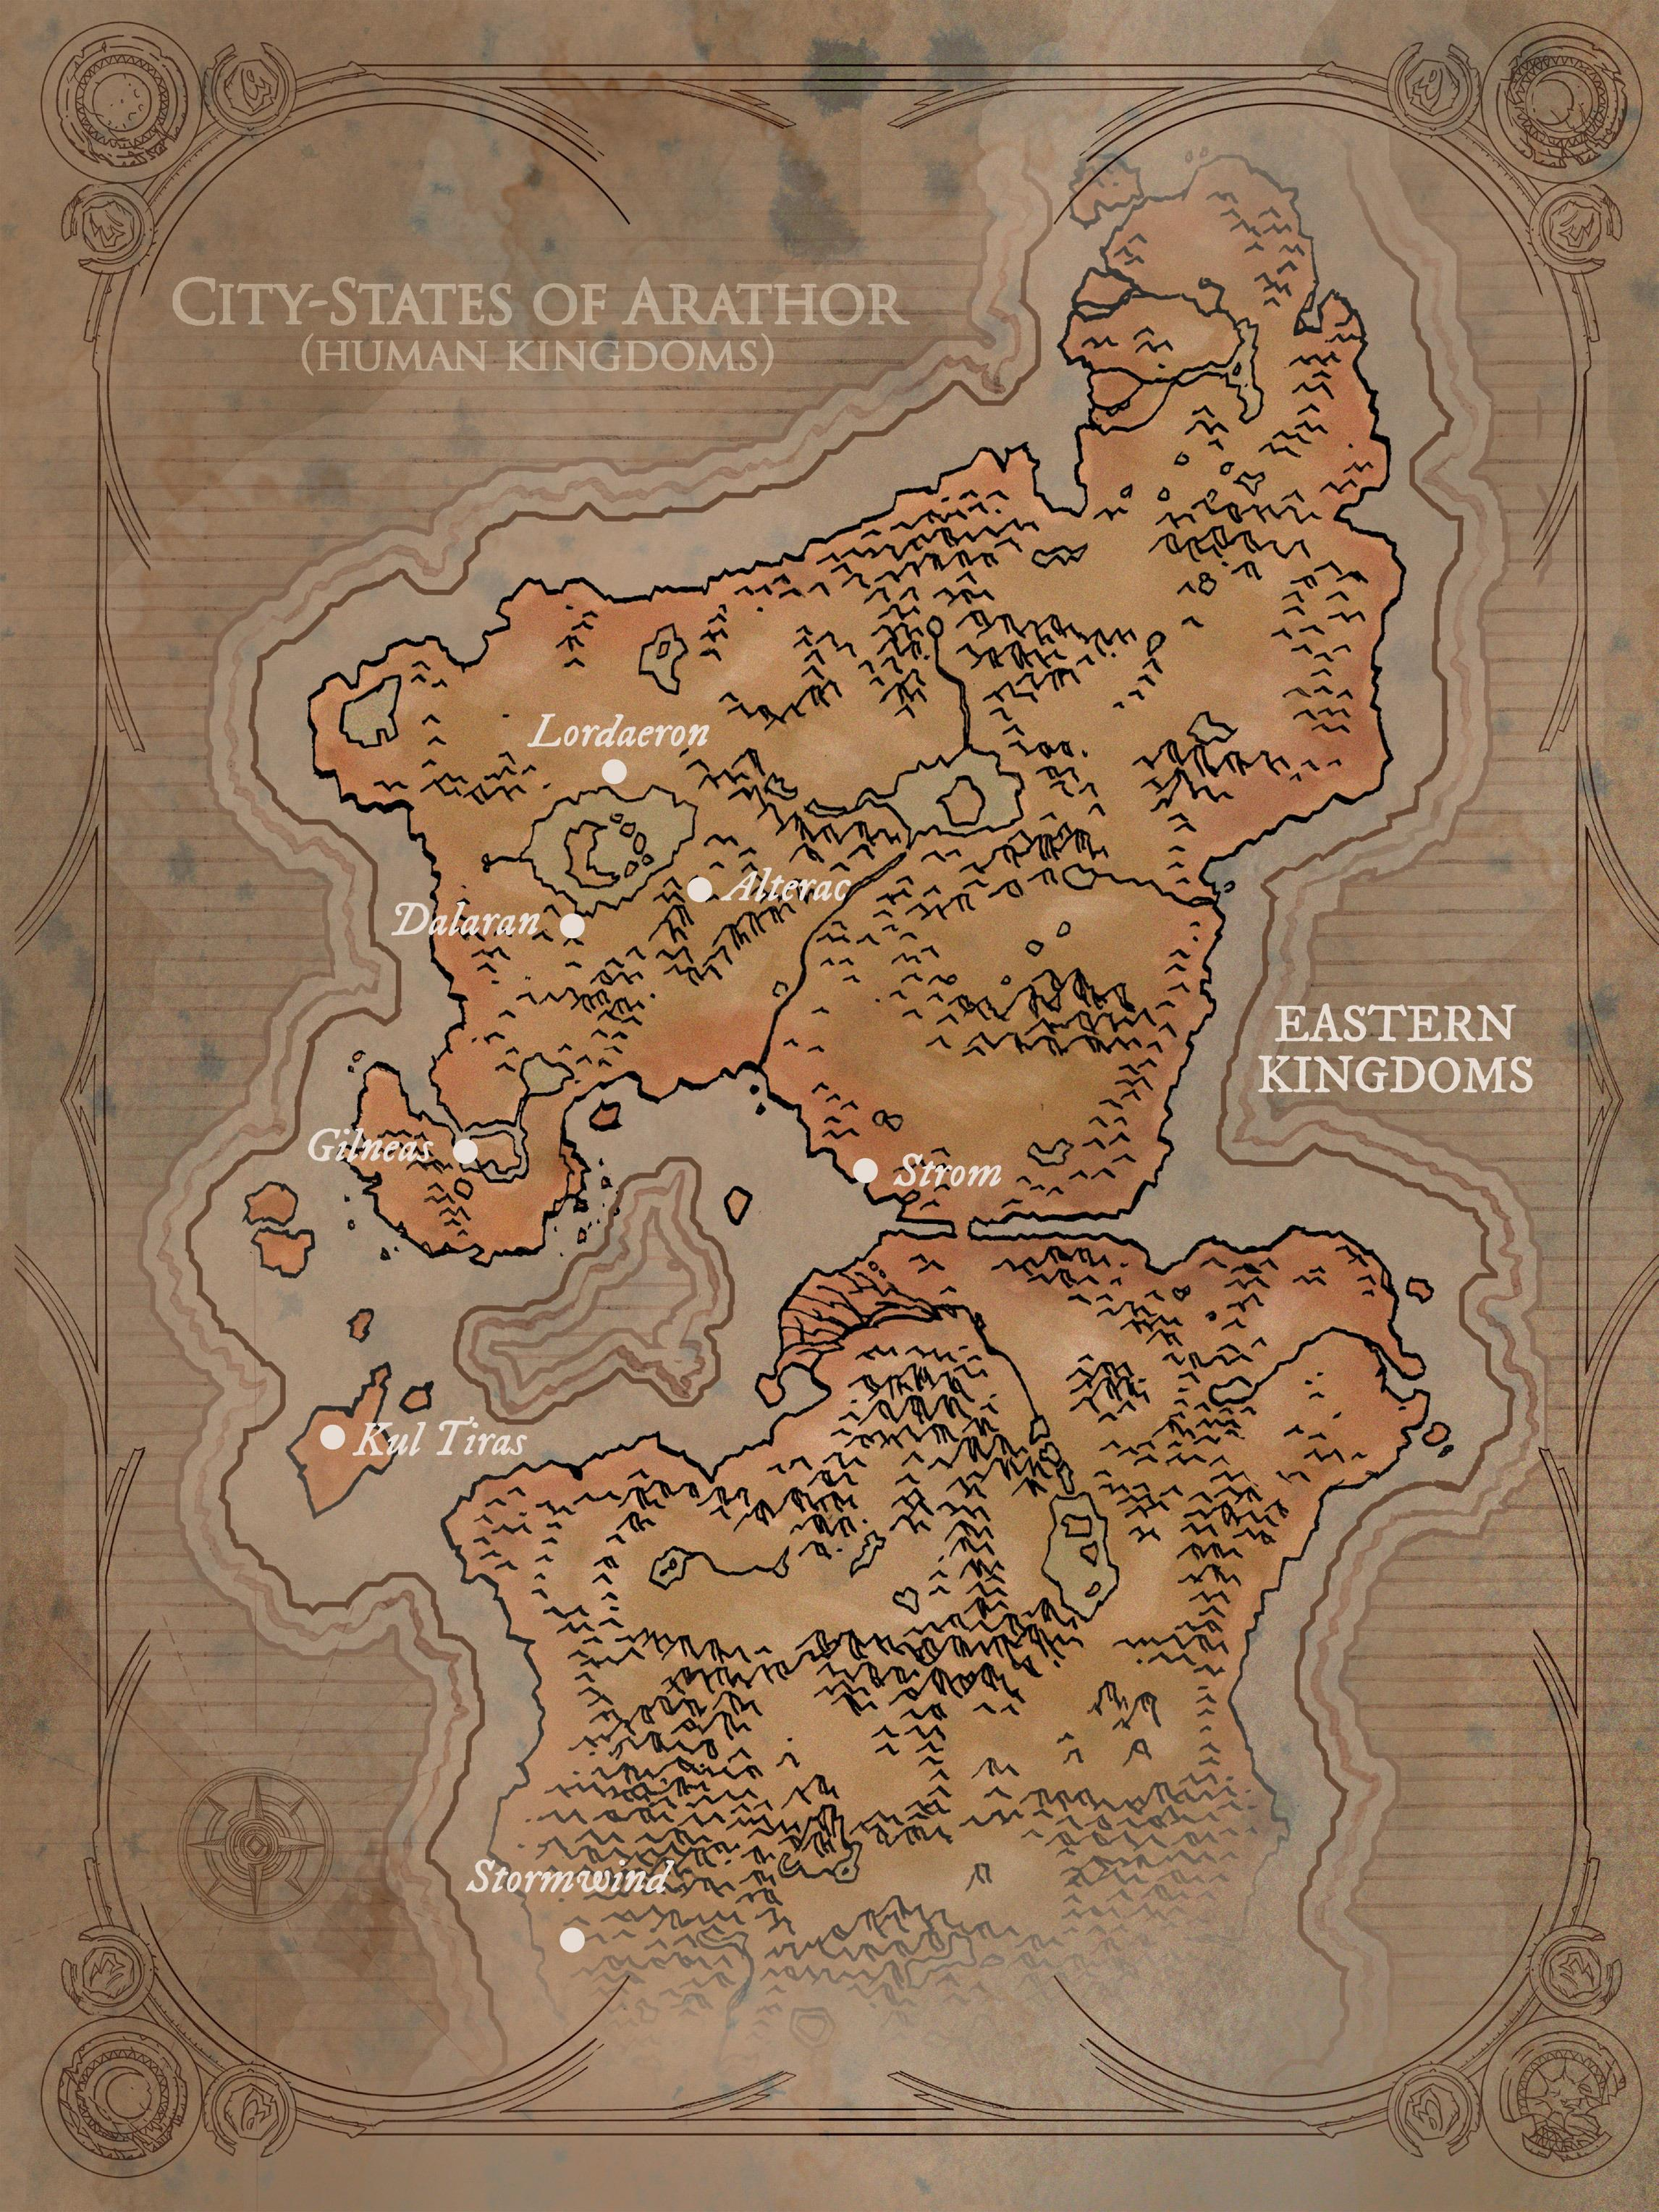 Chronicle_Map_of_Arathor%27s_City-States_1524690748.jpg